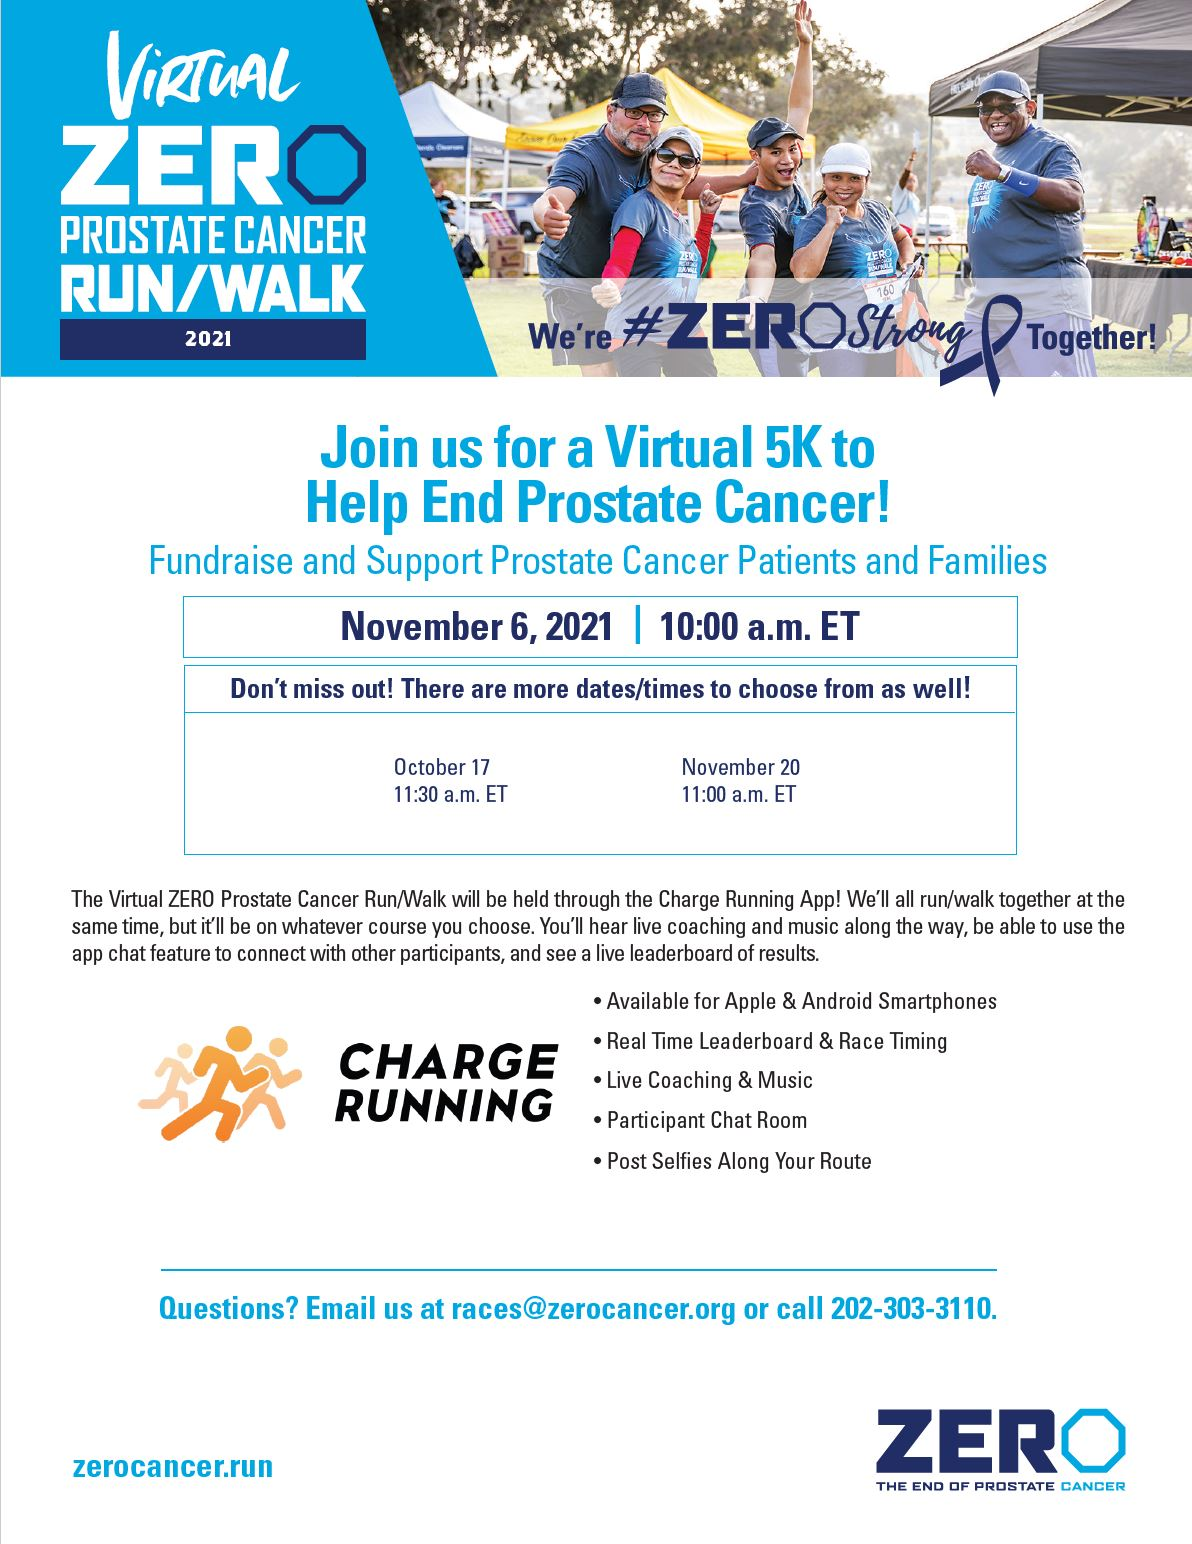 ZERO is virtual this year, here is the information you need to help us end prostate cancer!!